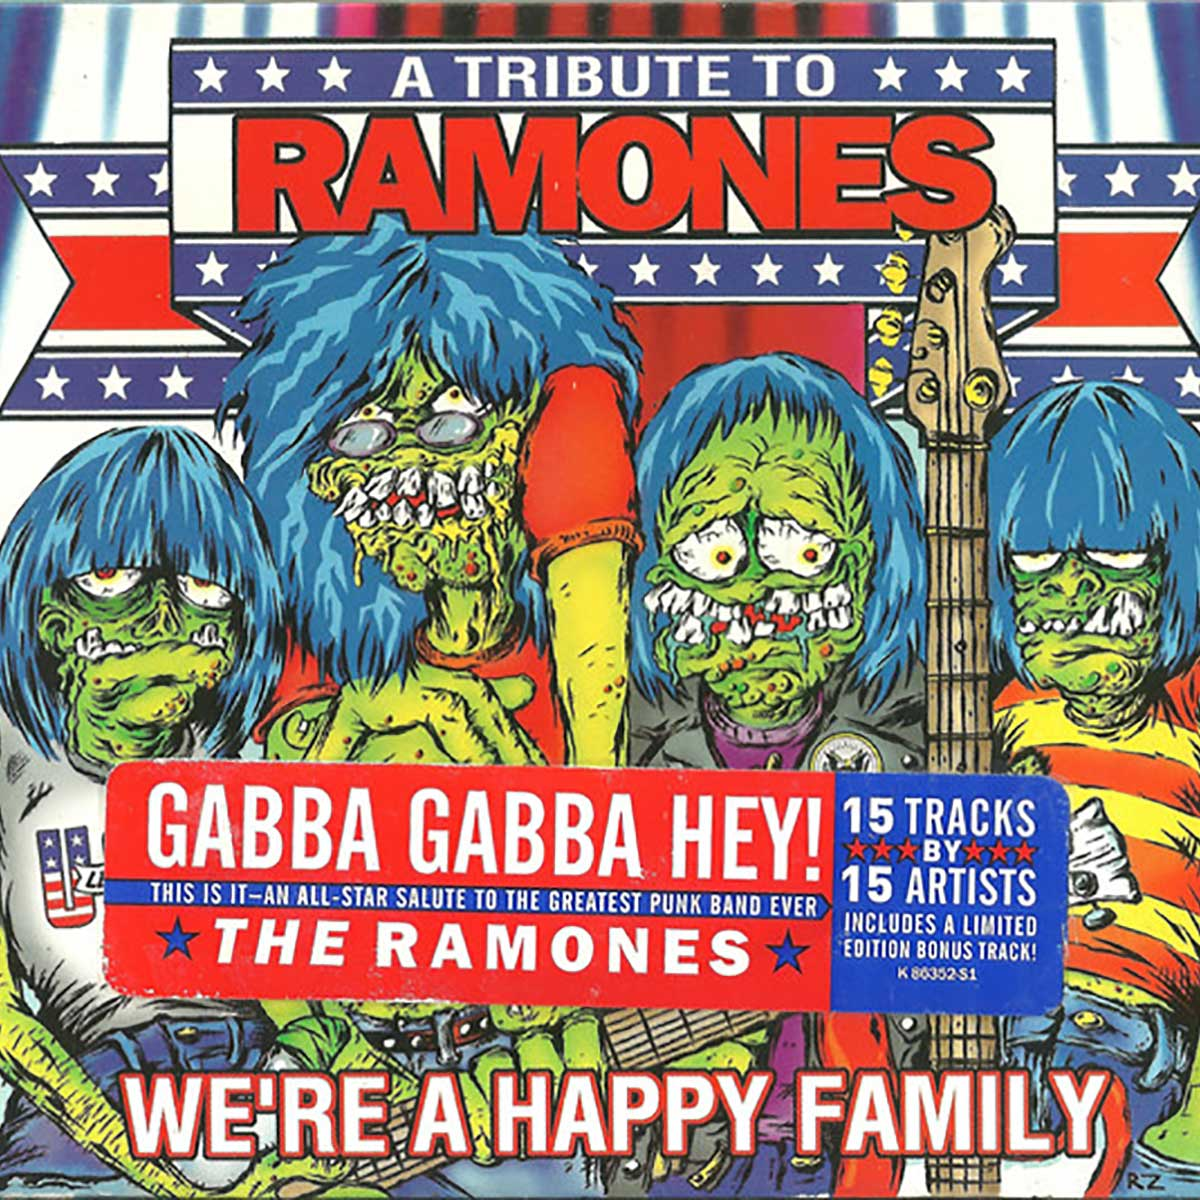 Ramones - A Tribute To